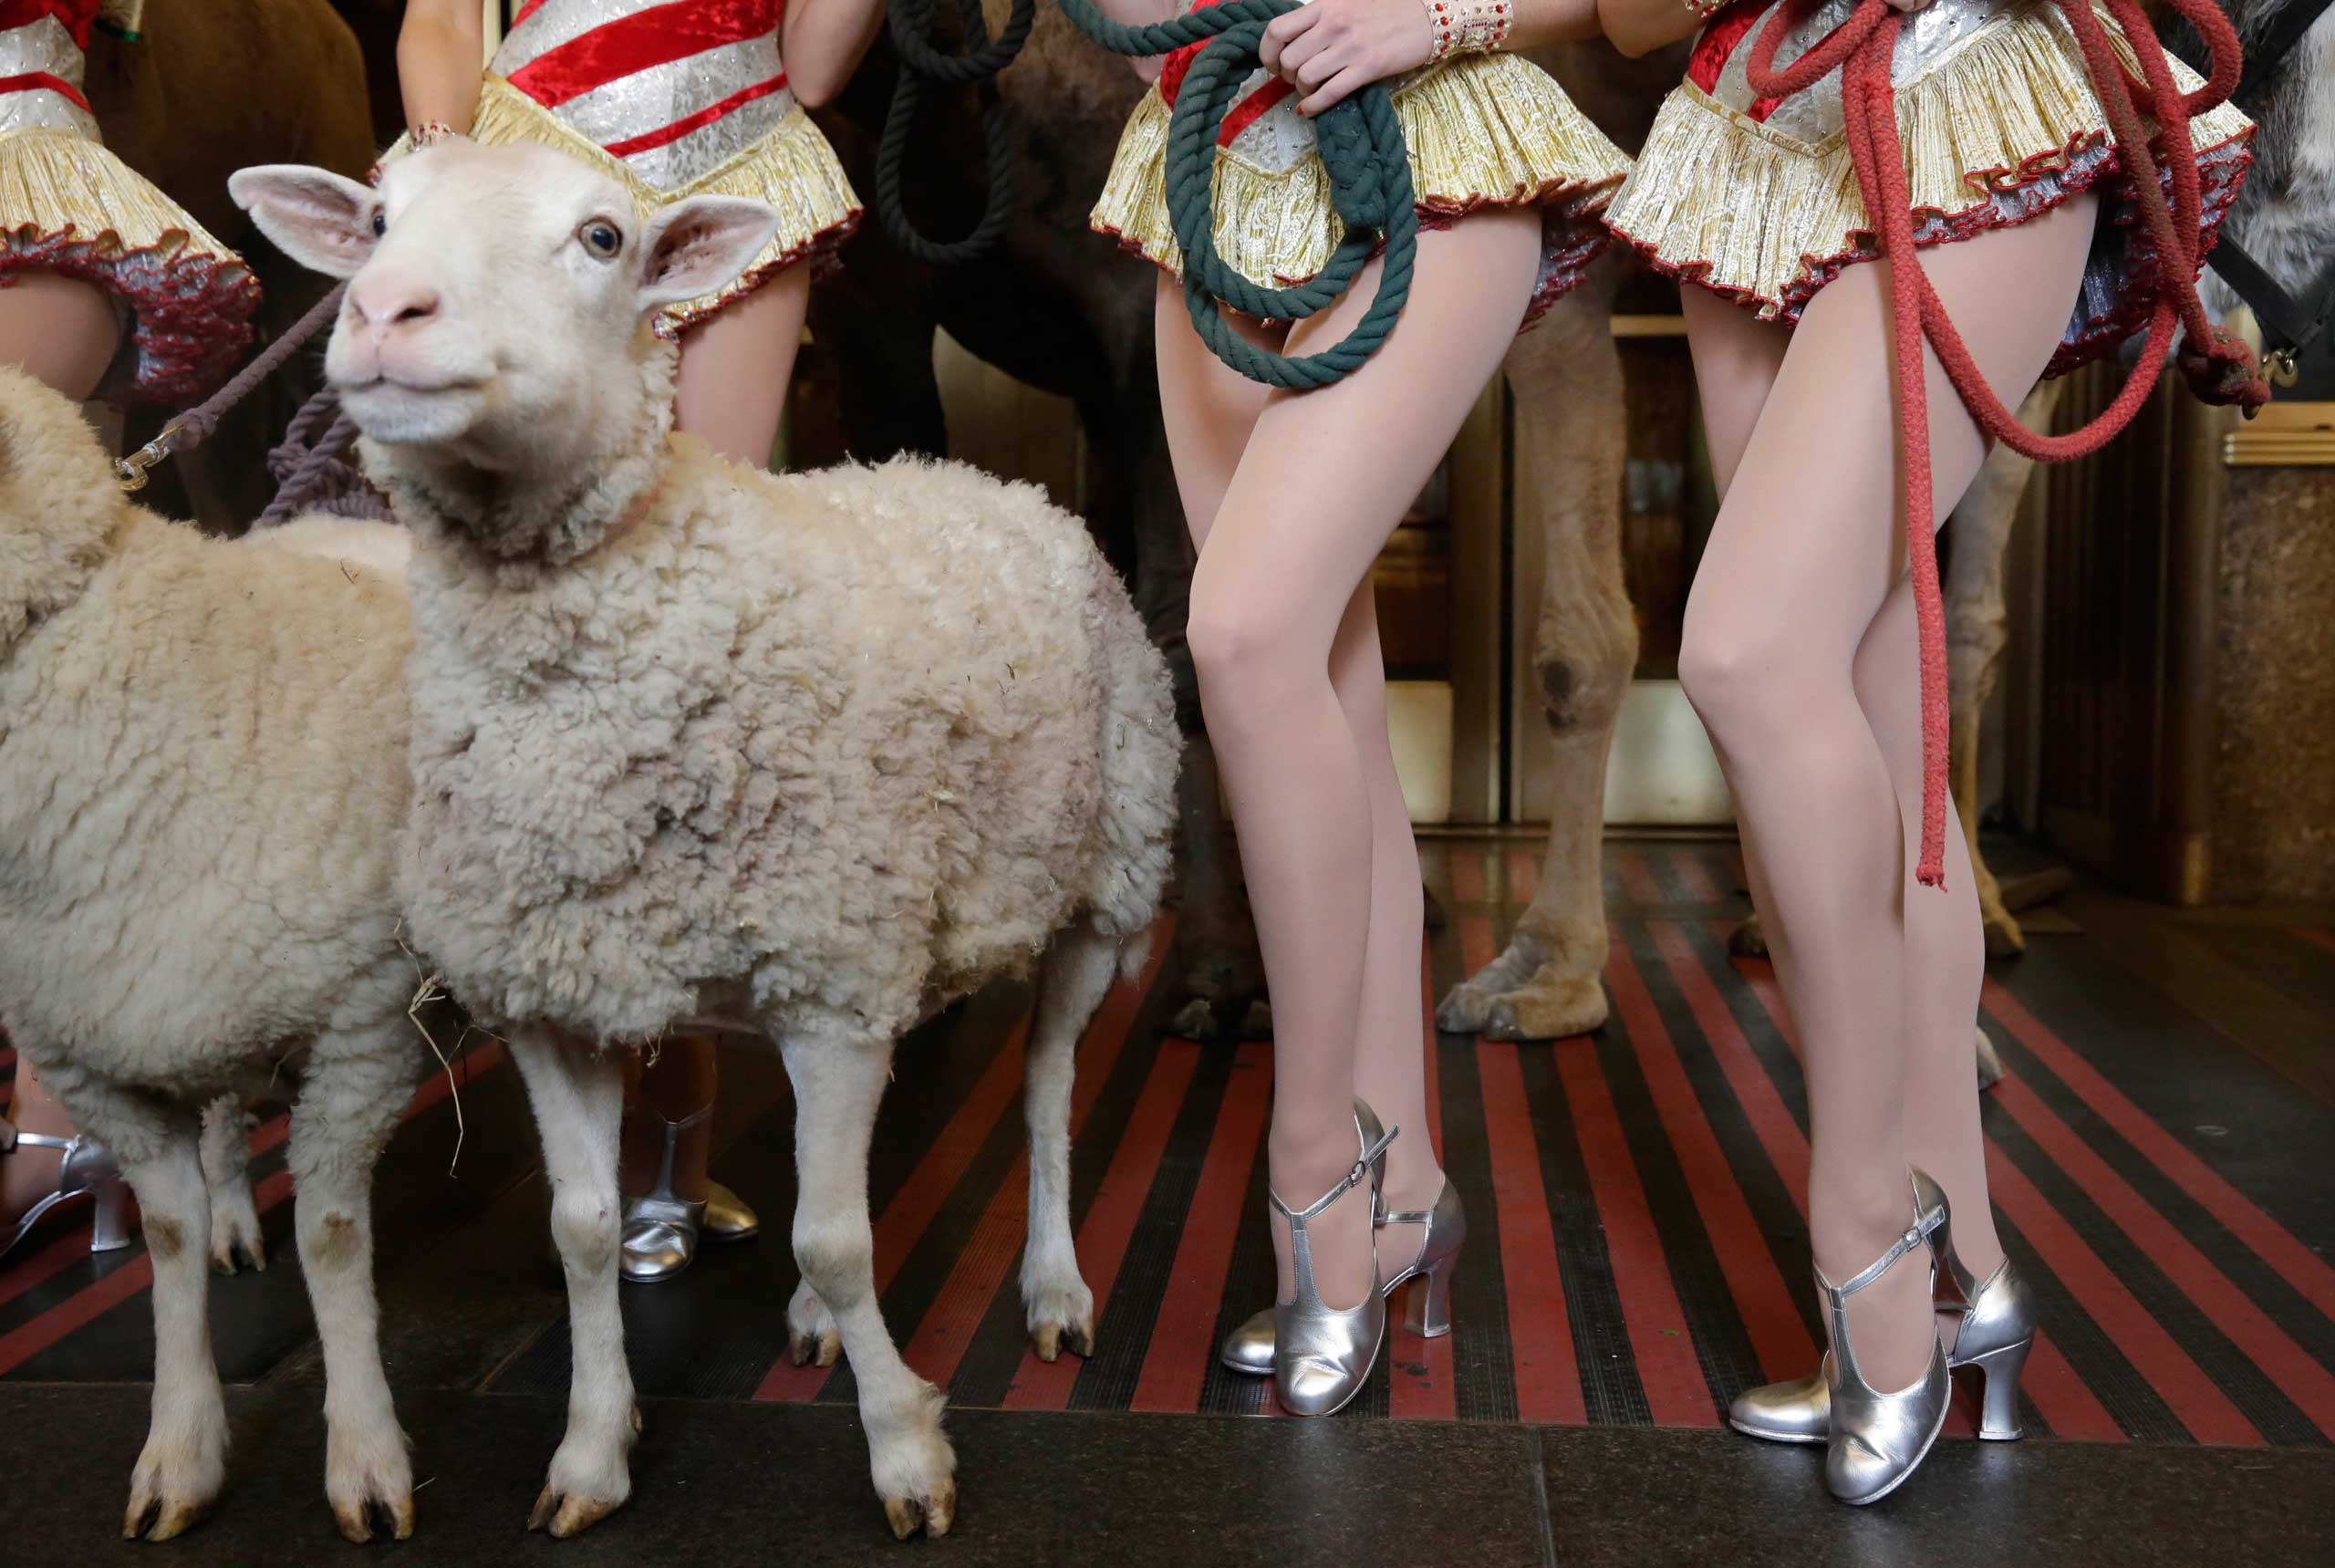 Oct. 28, 2014. The legs of camel and sheep for the Living Nativity scene, and Rockettes, of the Radio City Christmas Special, are juxtaposed as they pose for photos outside New York's Radio City Music Hall.